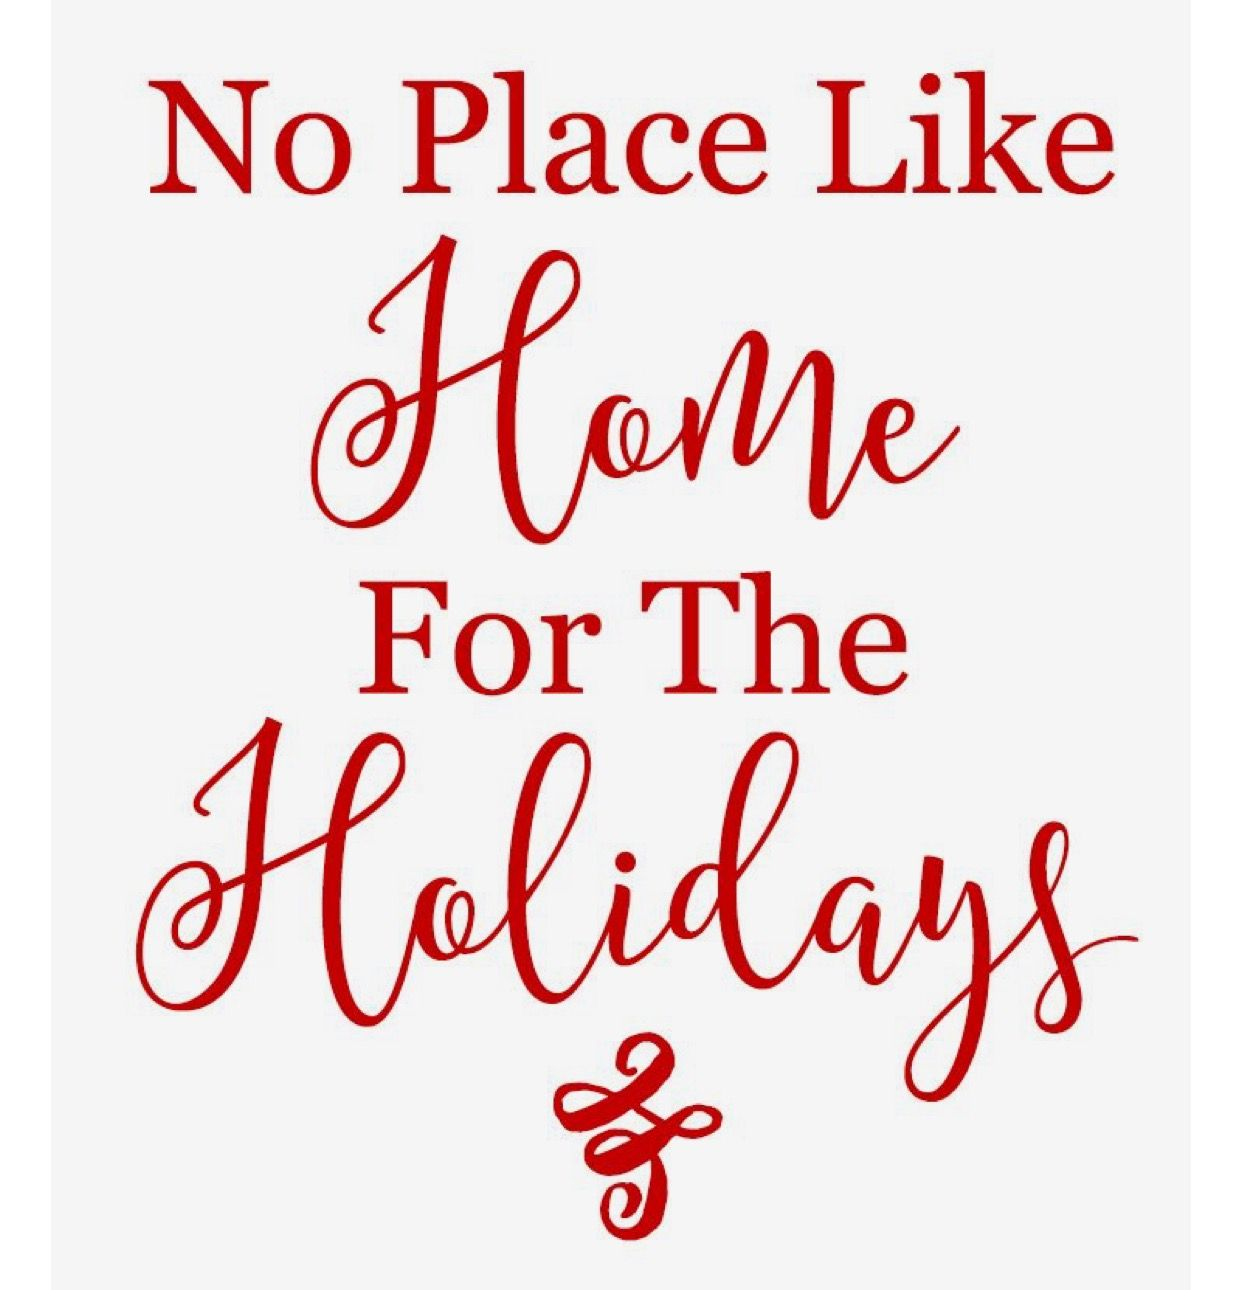 Pin by Grammie Newman on Family | Pinterest | Christmas time and Merry